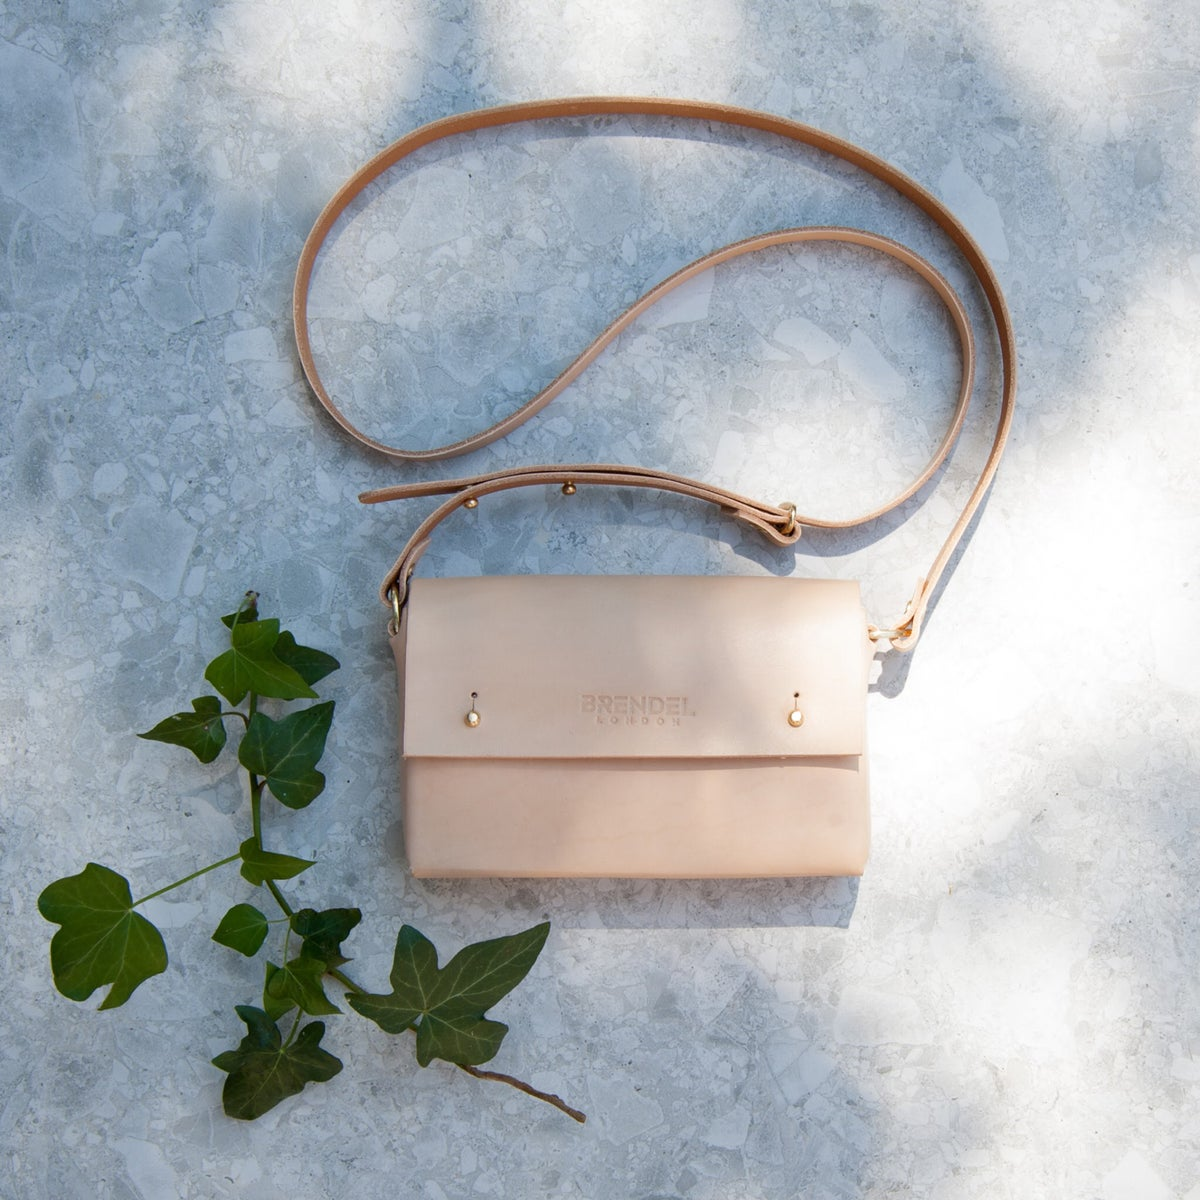 Image of RIV MINI Shoulder Bag NATURAL